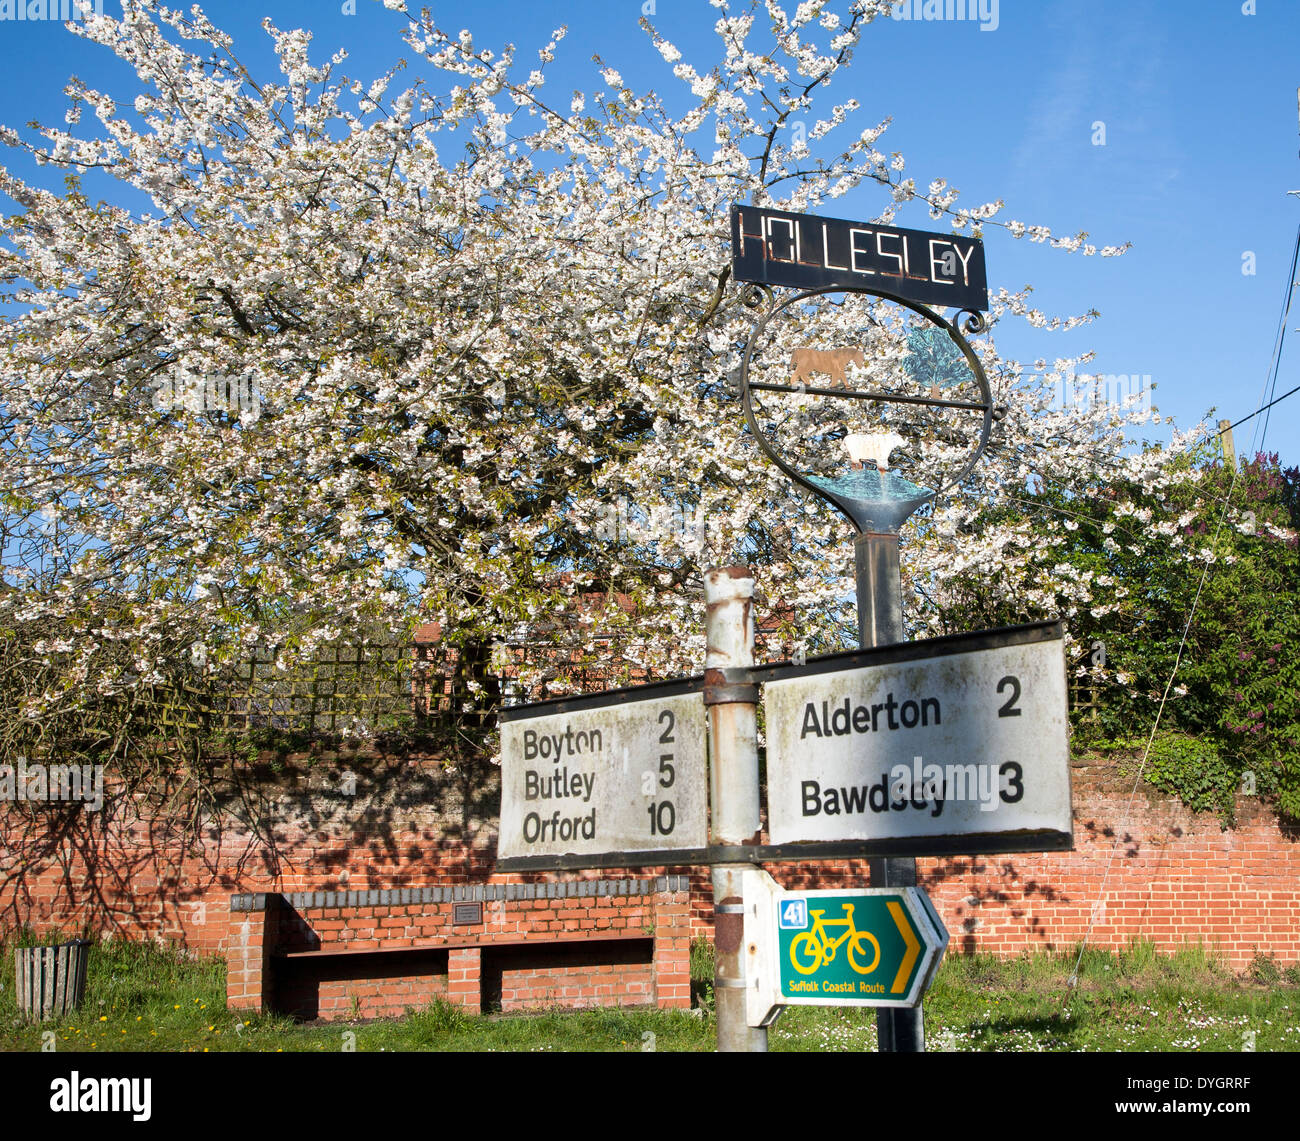 Spring blossom on trees and road sign in the village of Hollesley, Suffolk, England - Stock Image